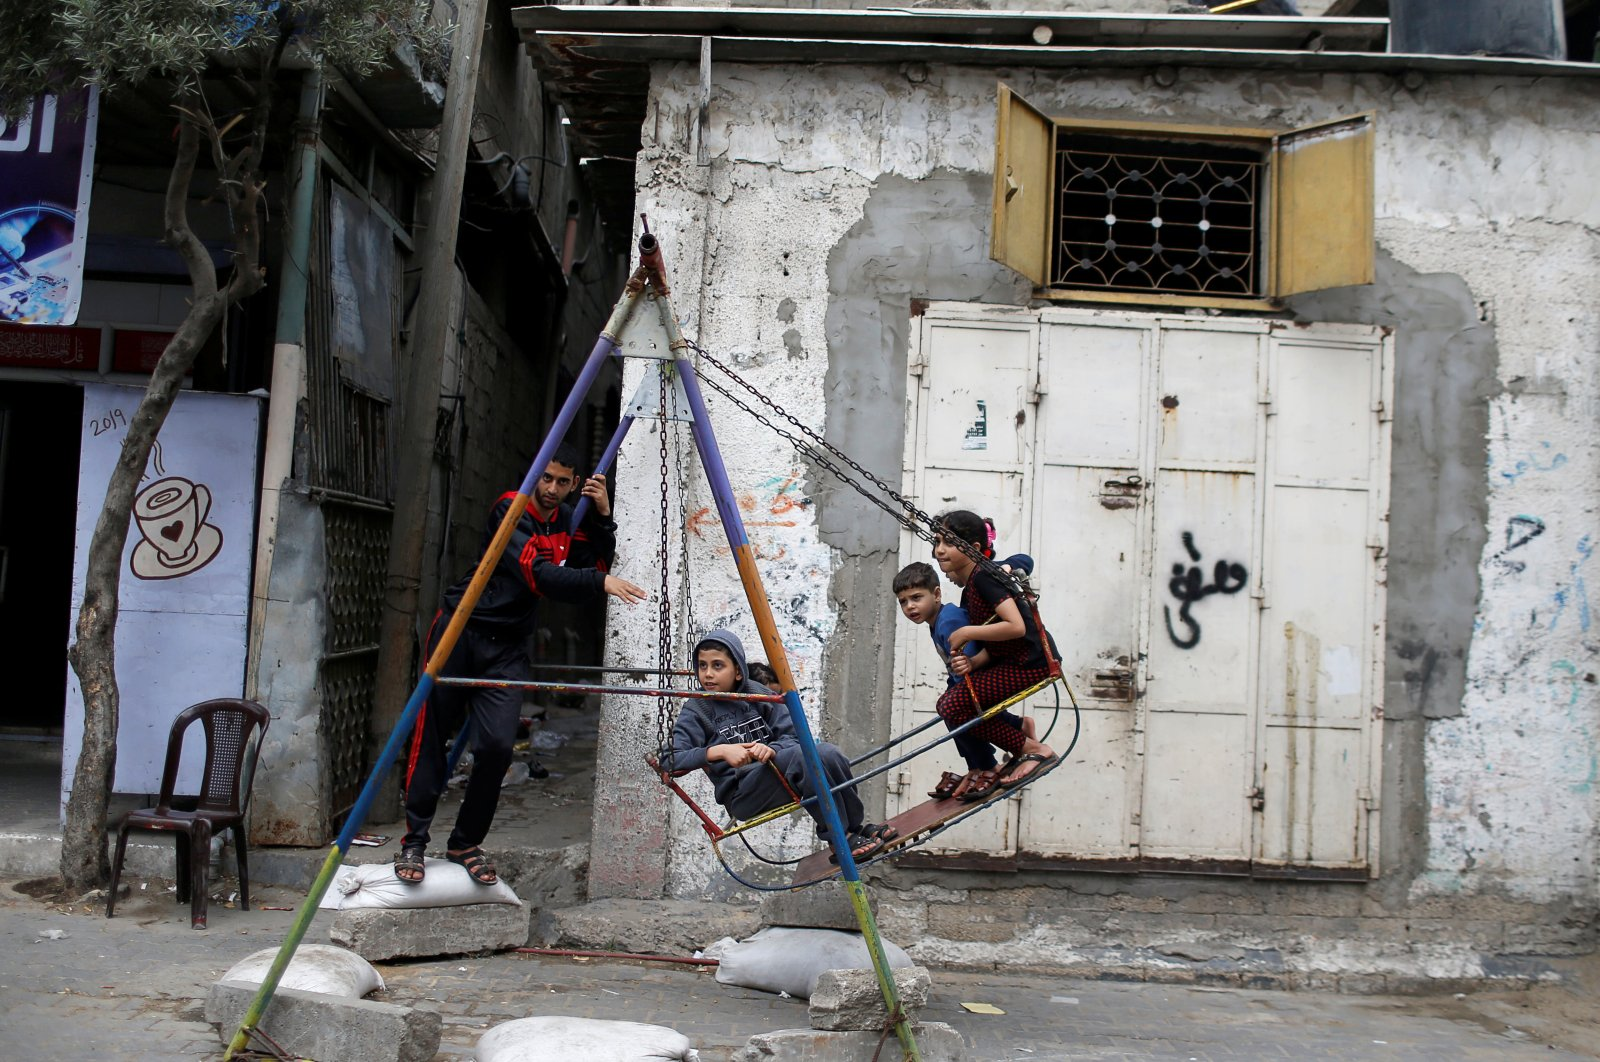 Palestinian children play on a swing in Jabalia refugee camp, Gaza, Palestine, May 5, 2020. (Reuters Photo)